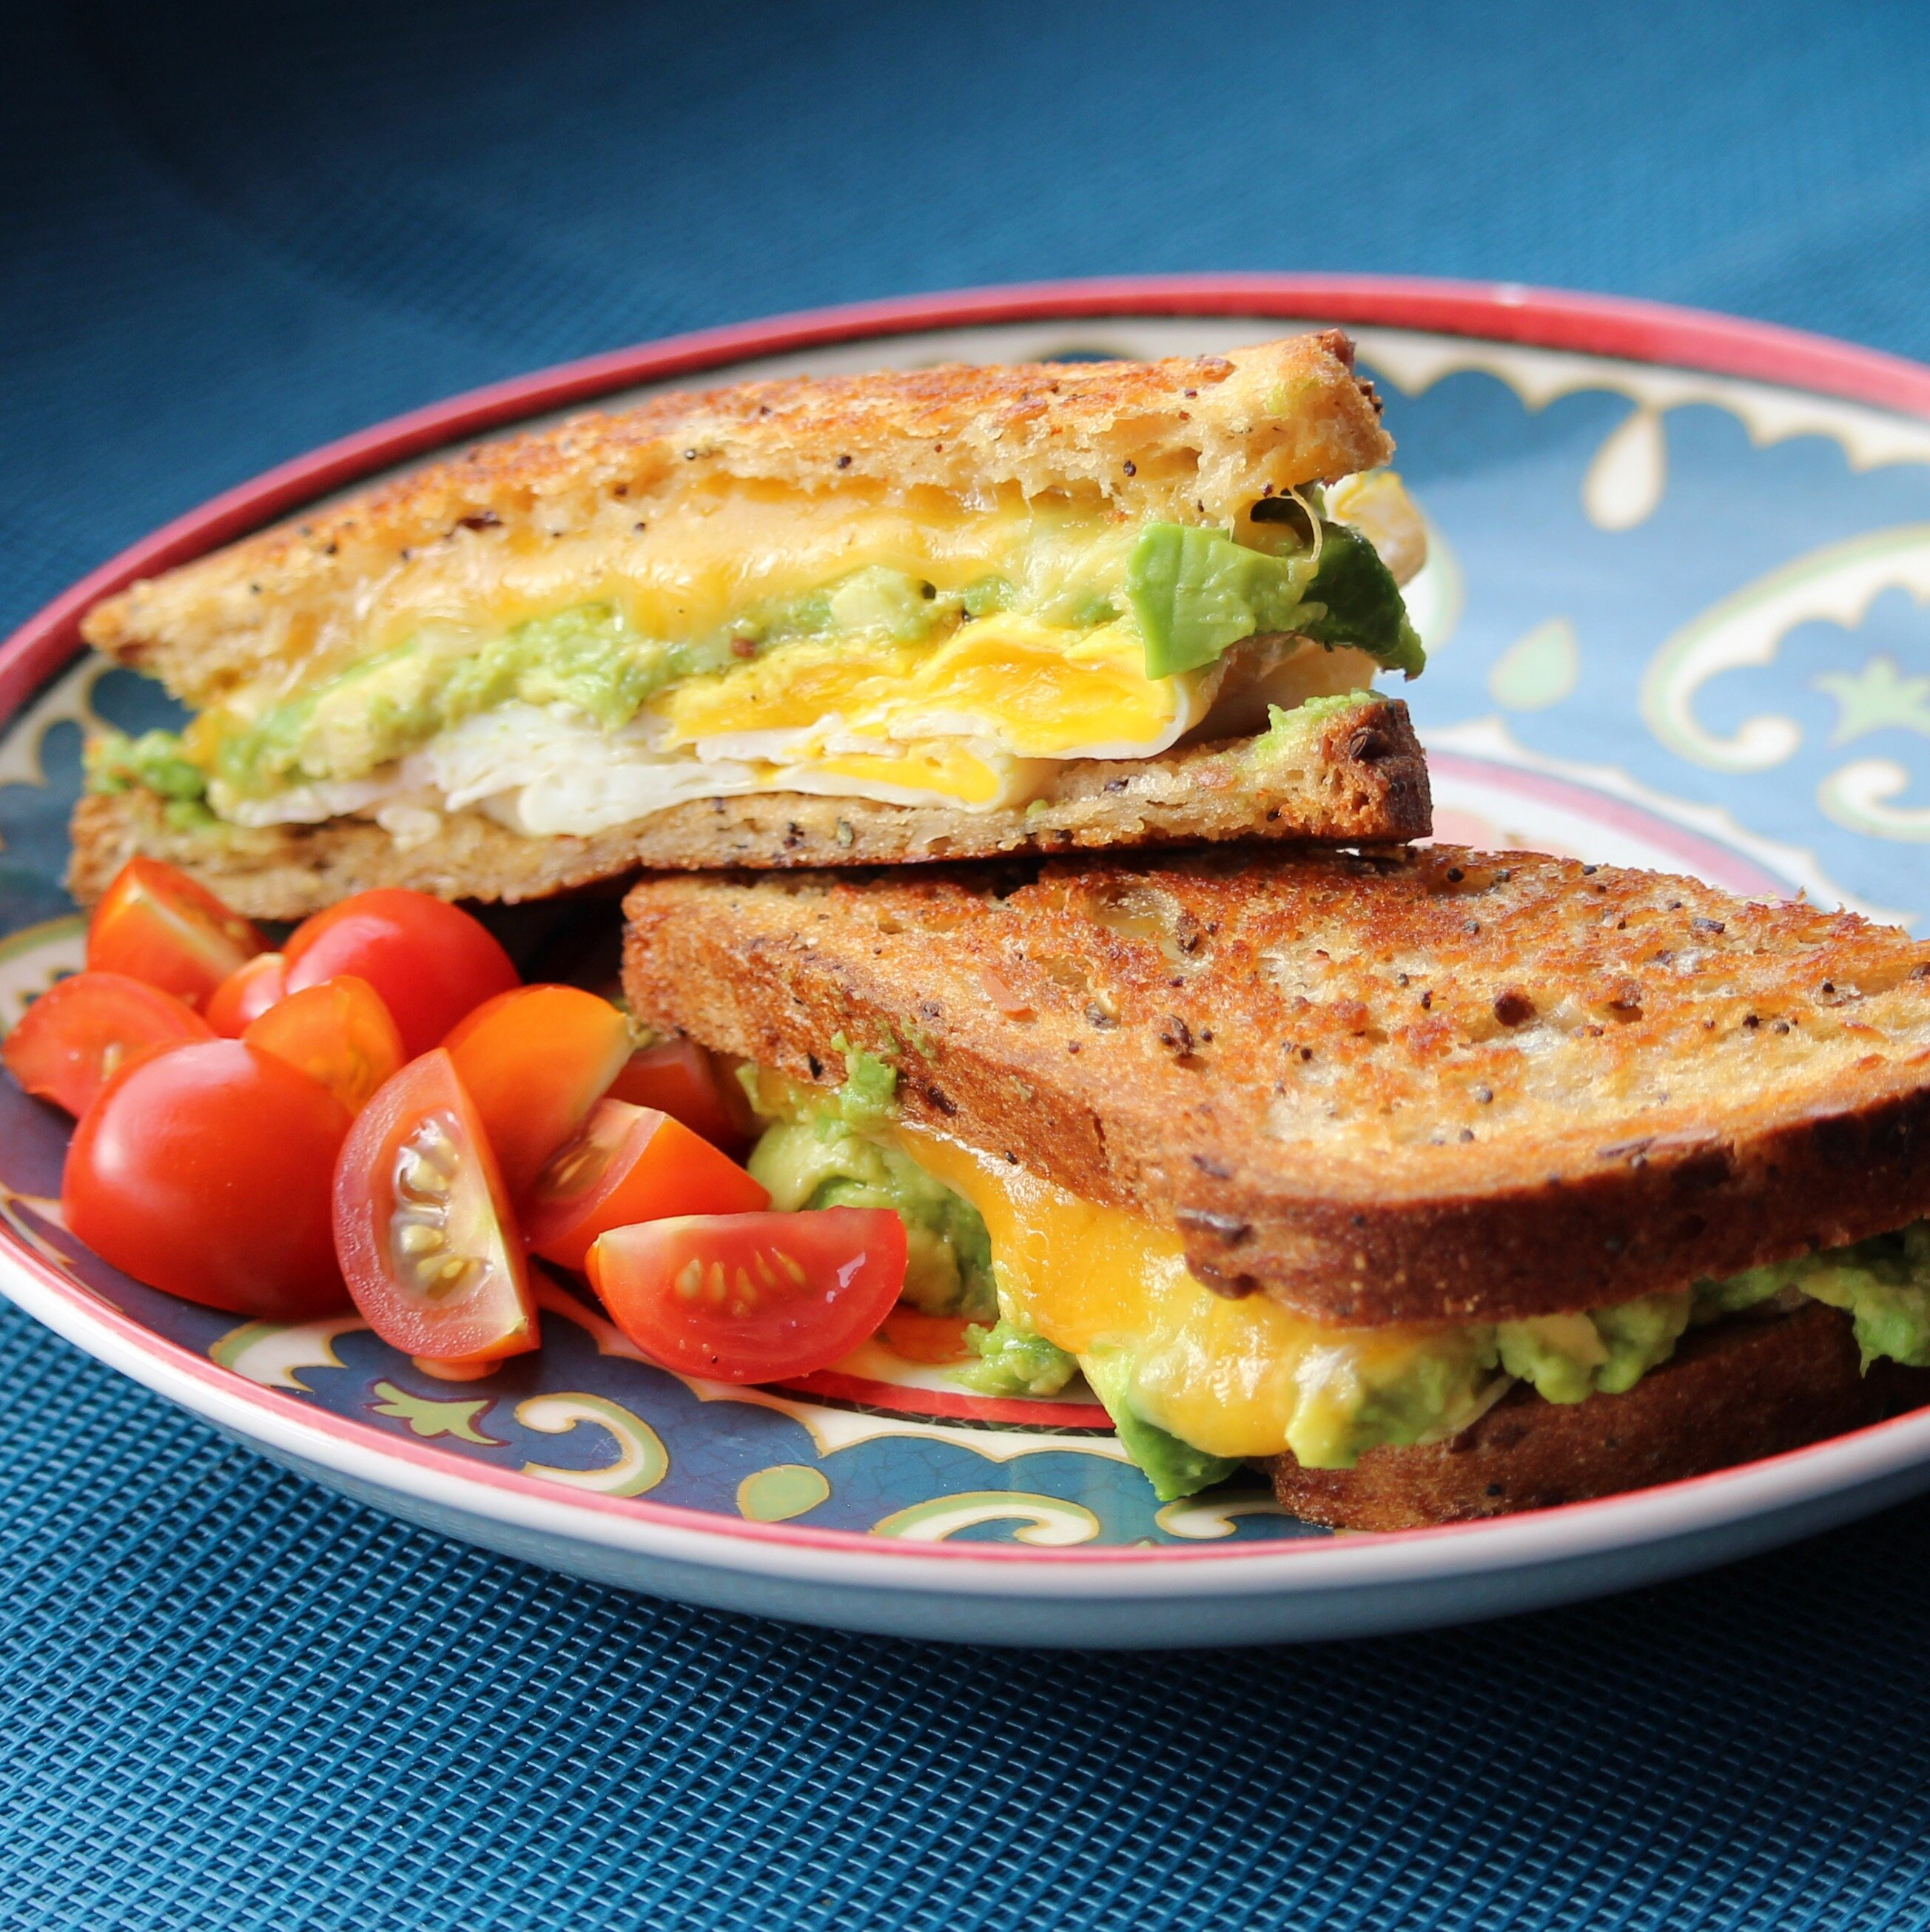 Avocado Breakfast Sandwich Recipe Allrecipes